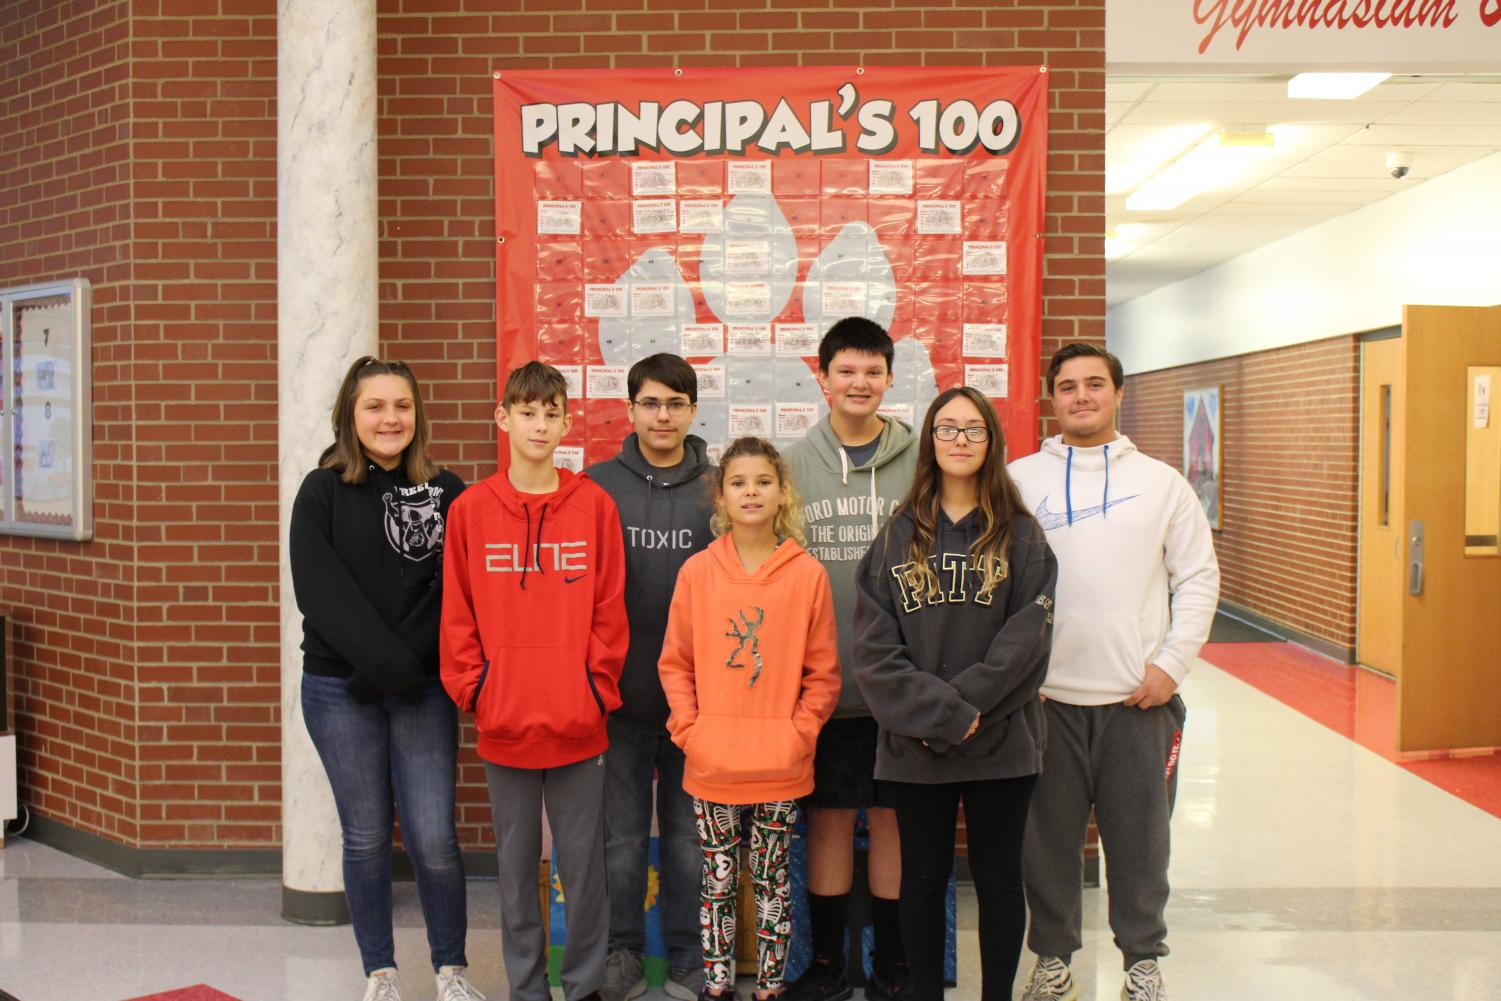 Seven middle school students will represent Freedom Middle School at the Beaver County Honors Band on Nov. 20-21.